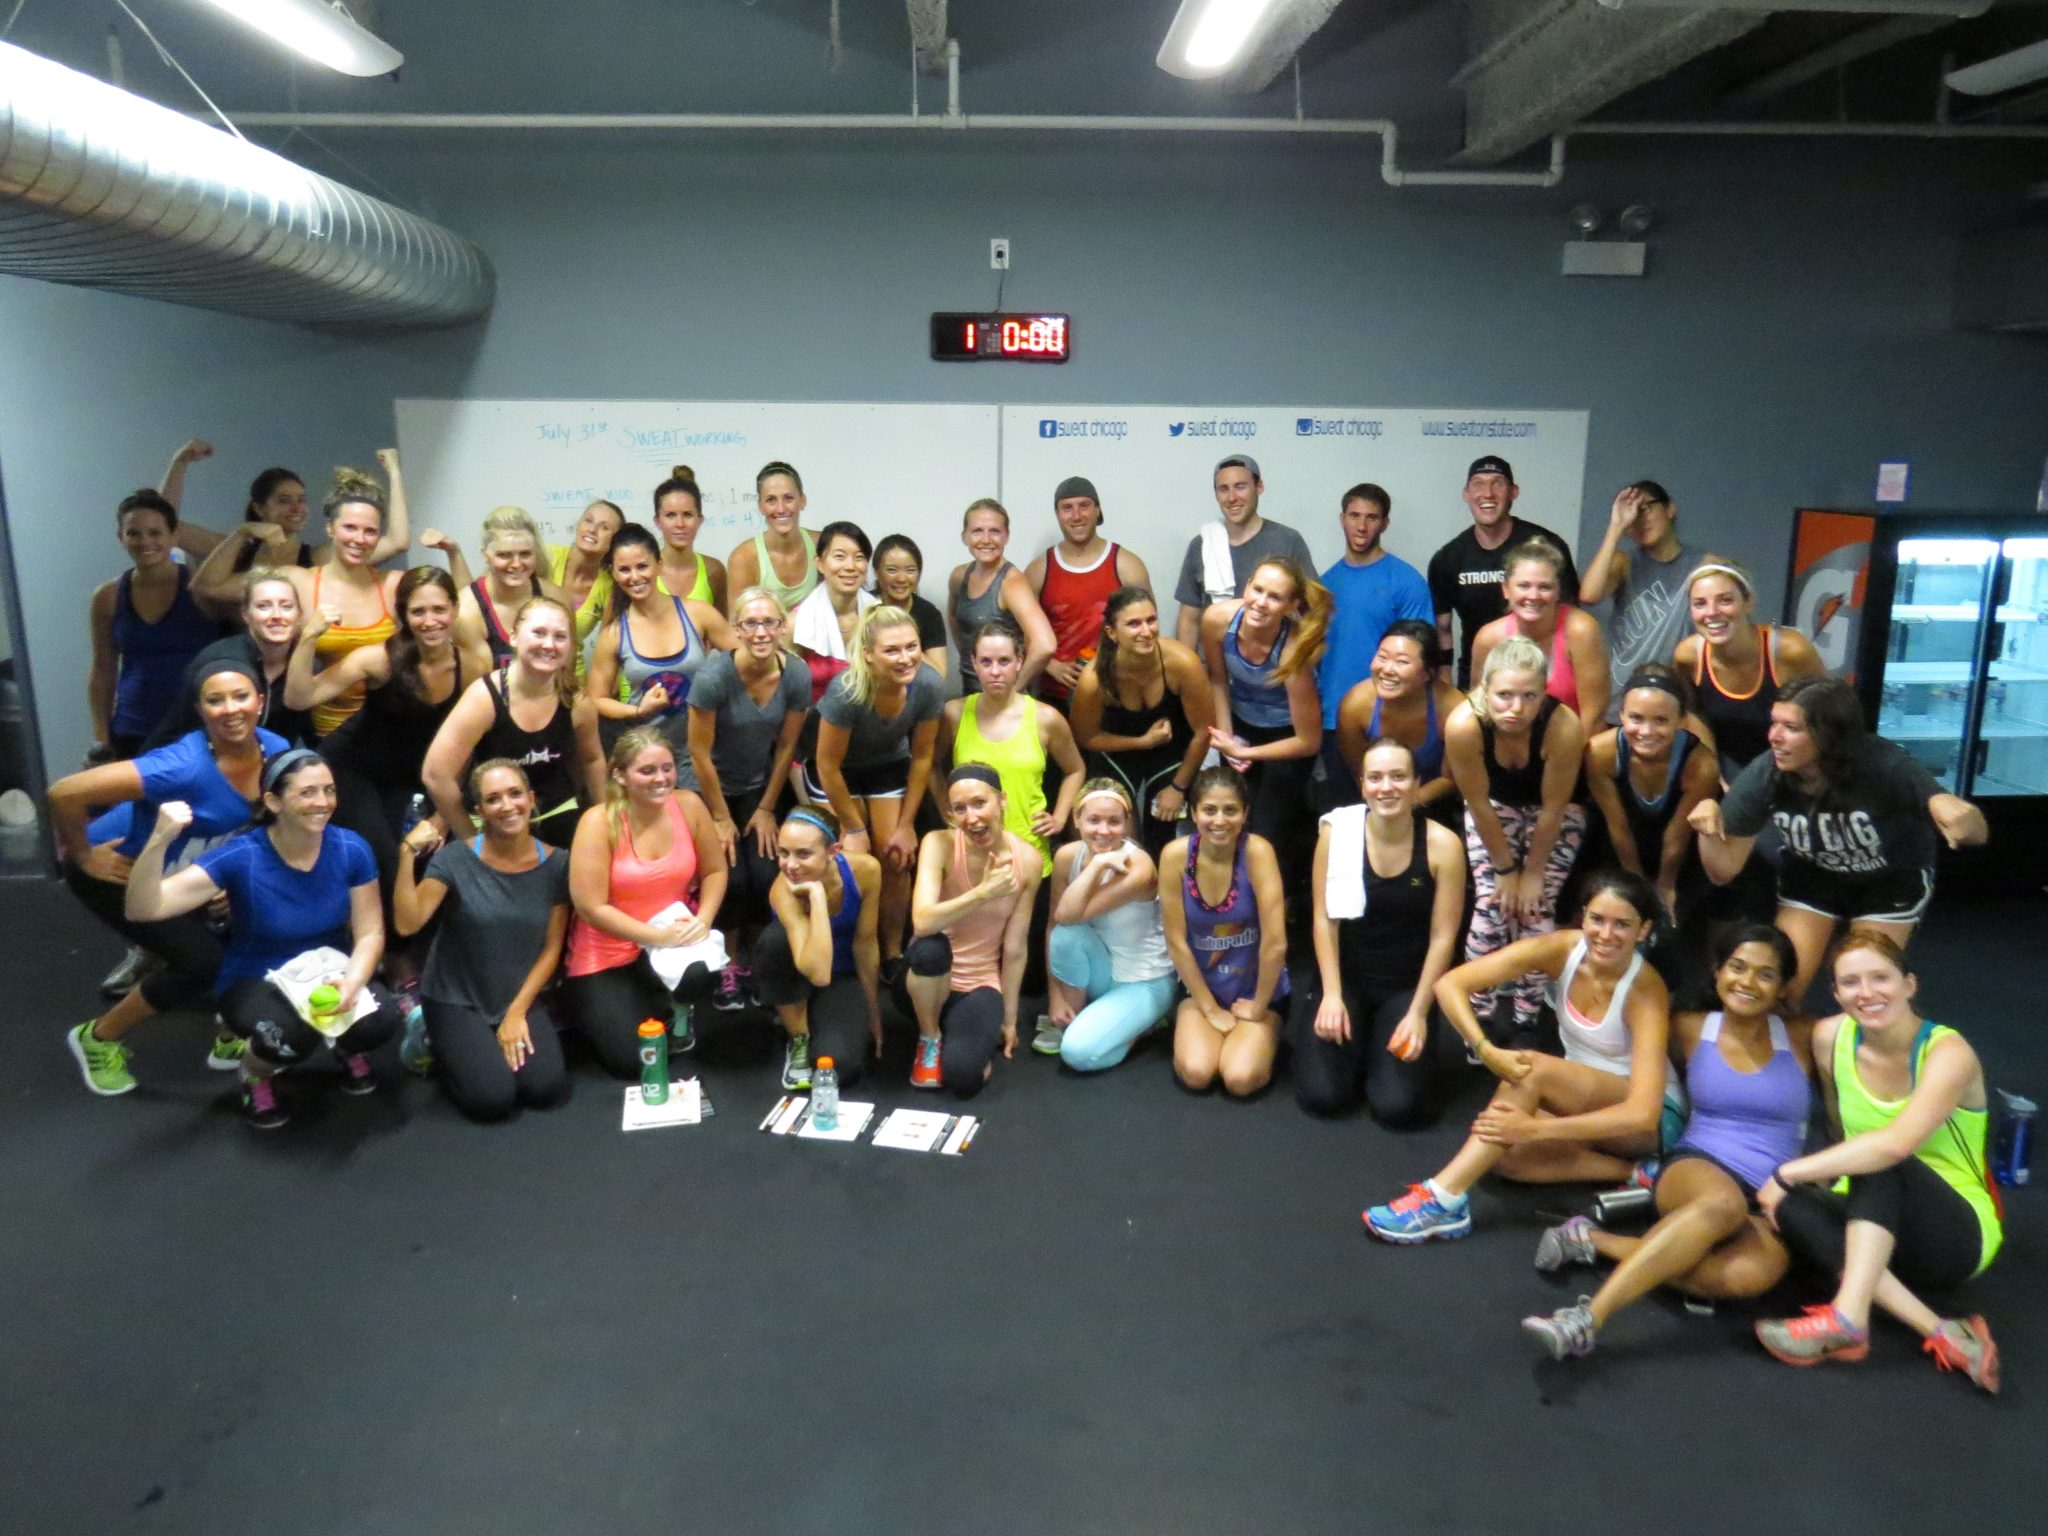 asweatlife fabfitchicago sweatworking chicago fitness events